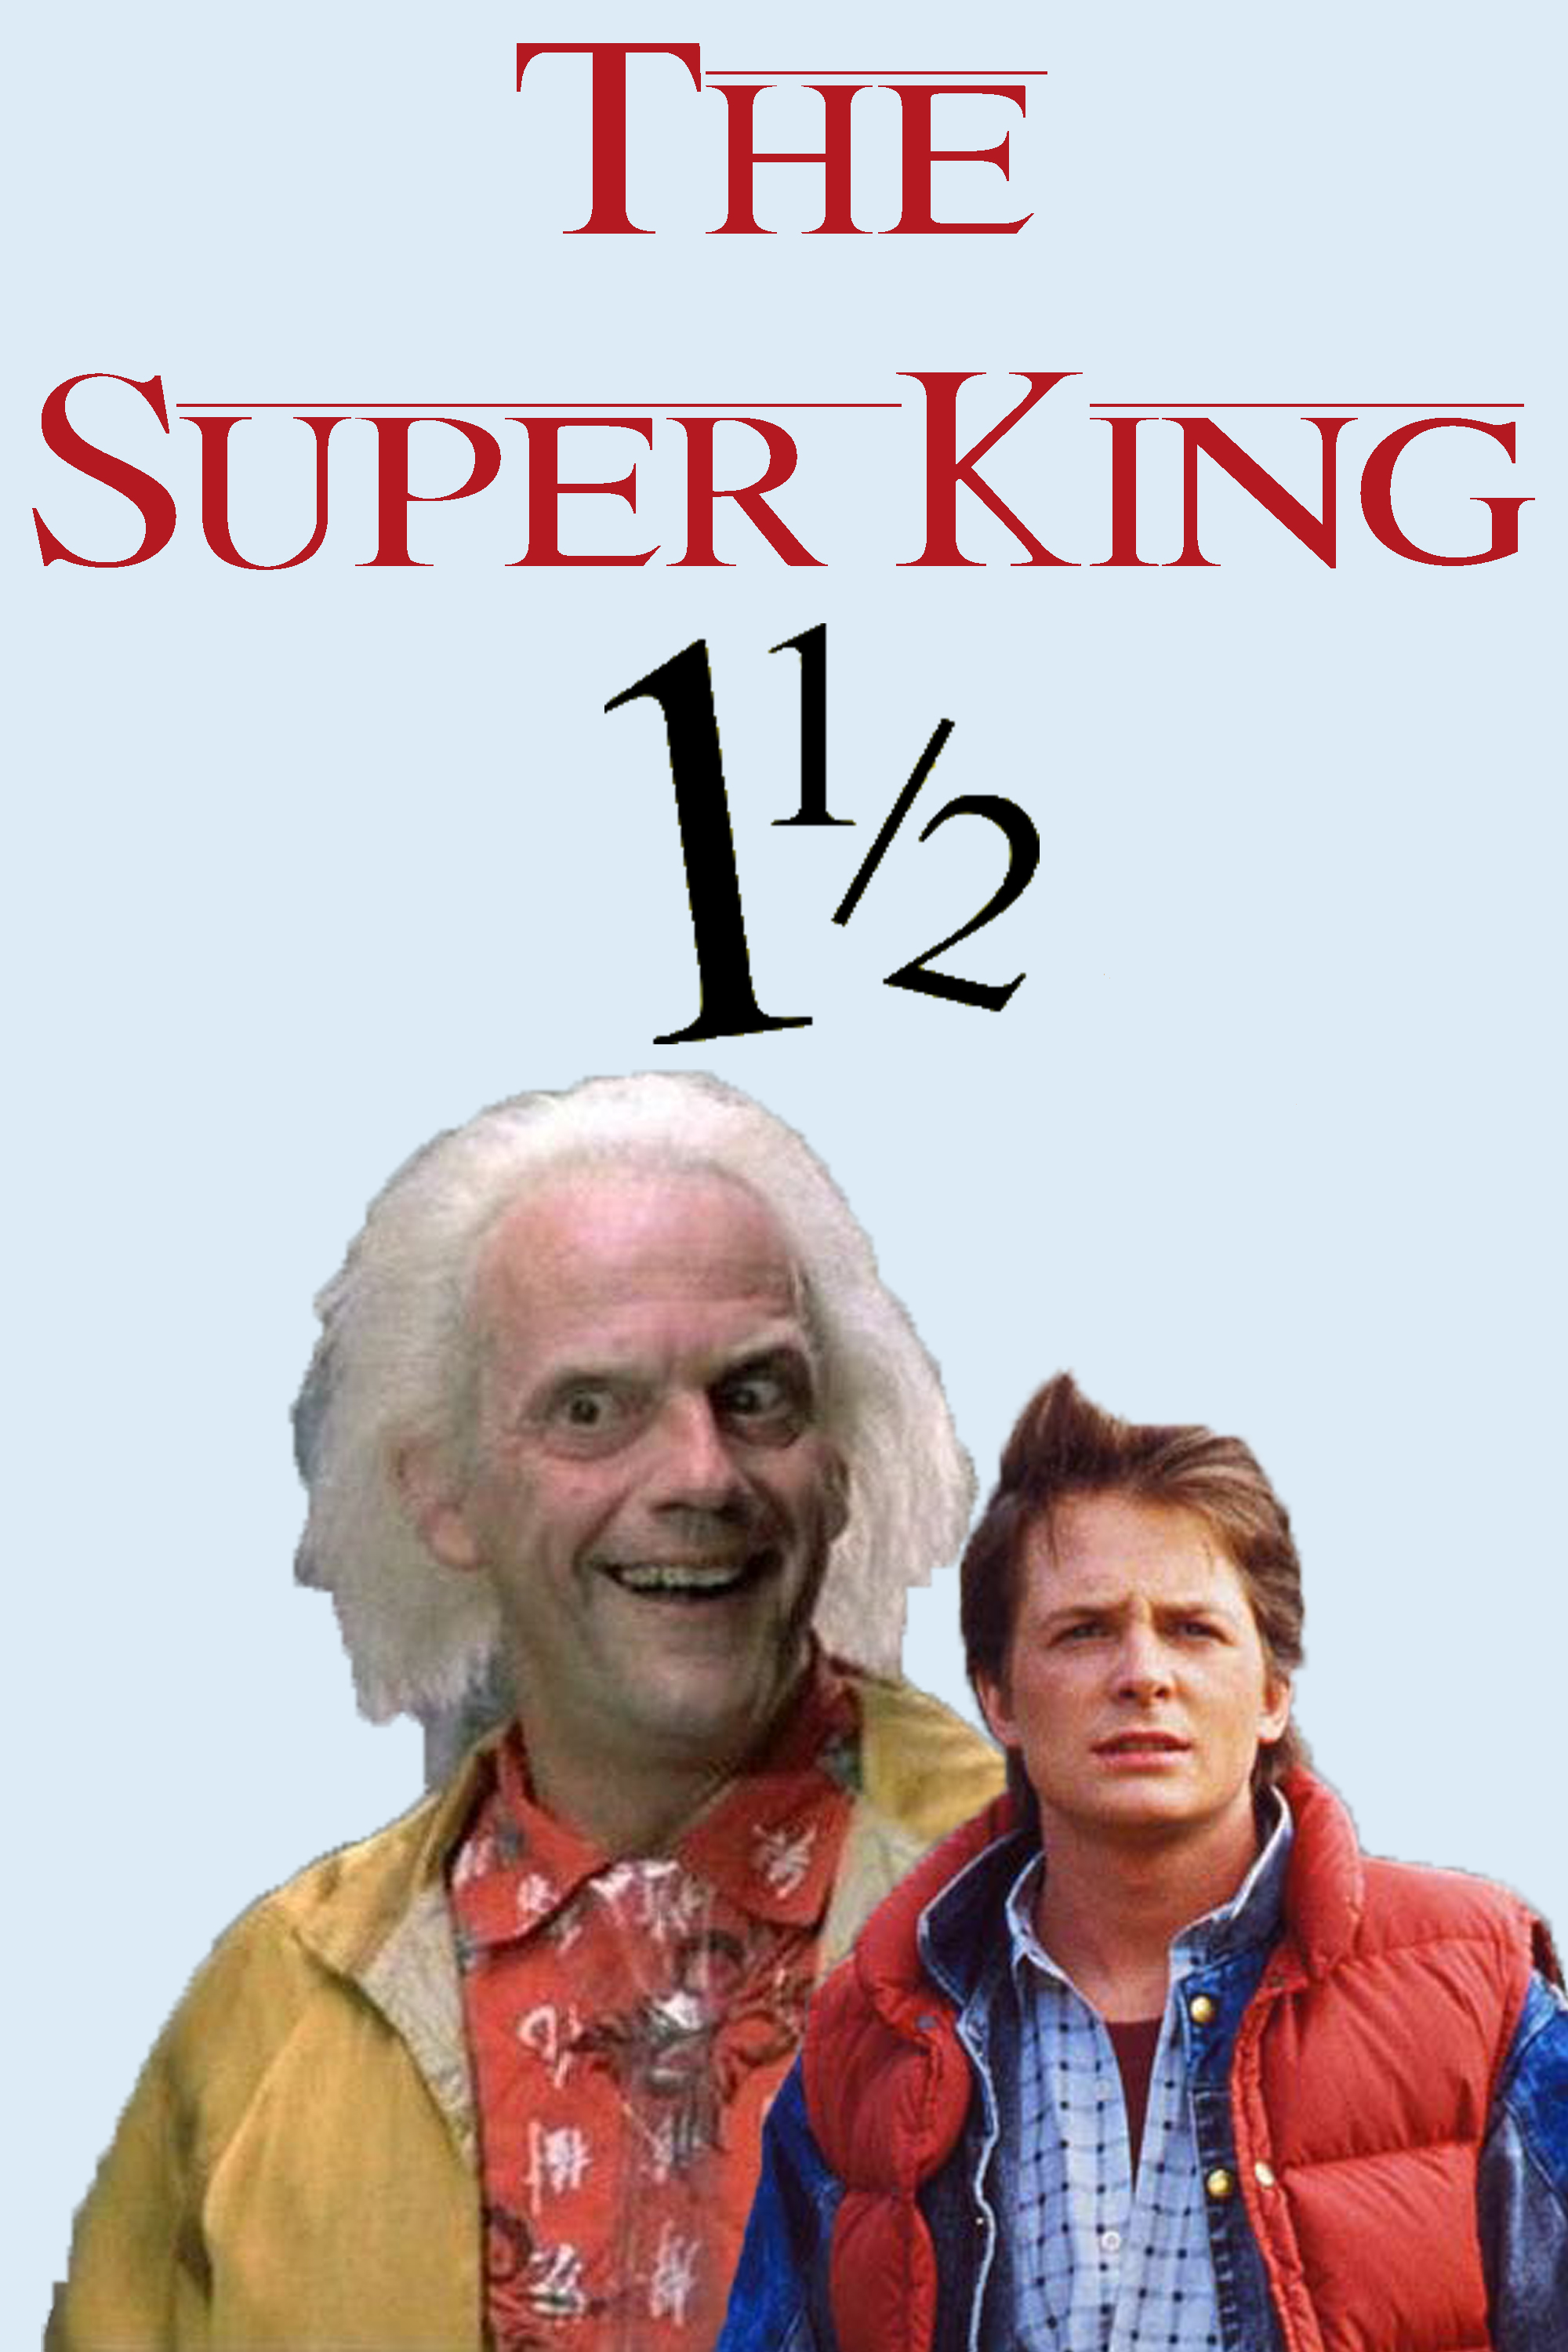 The Super King 1½